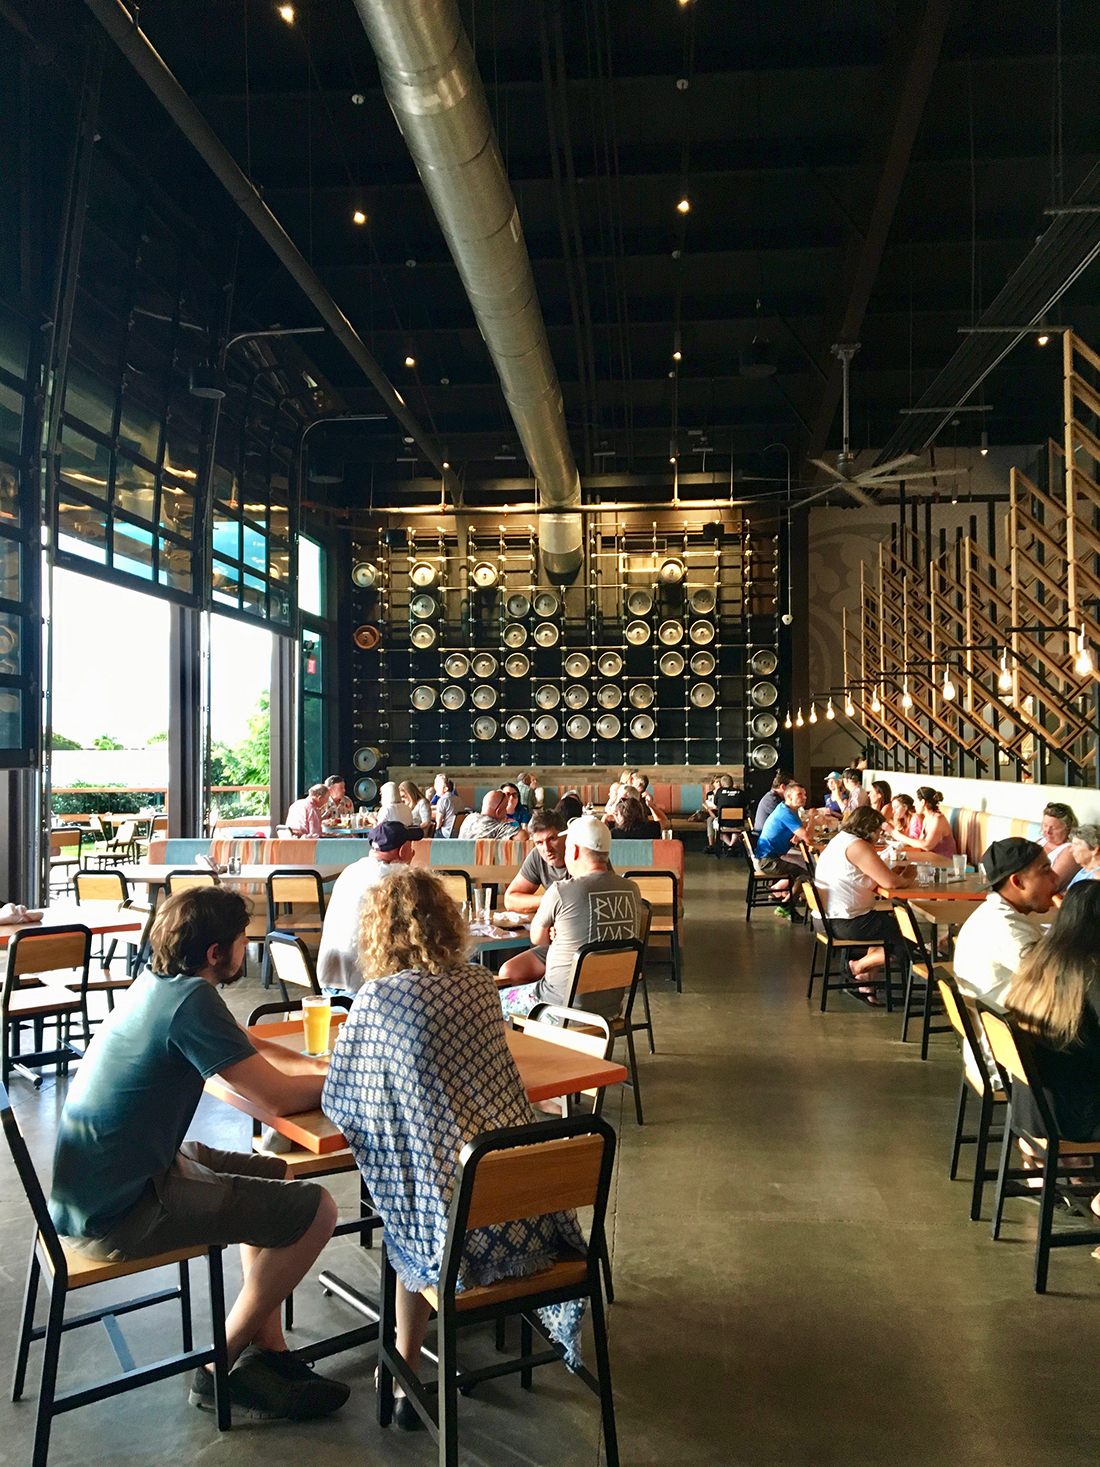 hawaii experience guests sitting at industrial brewing company